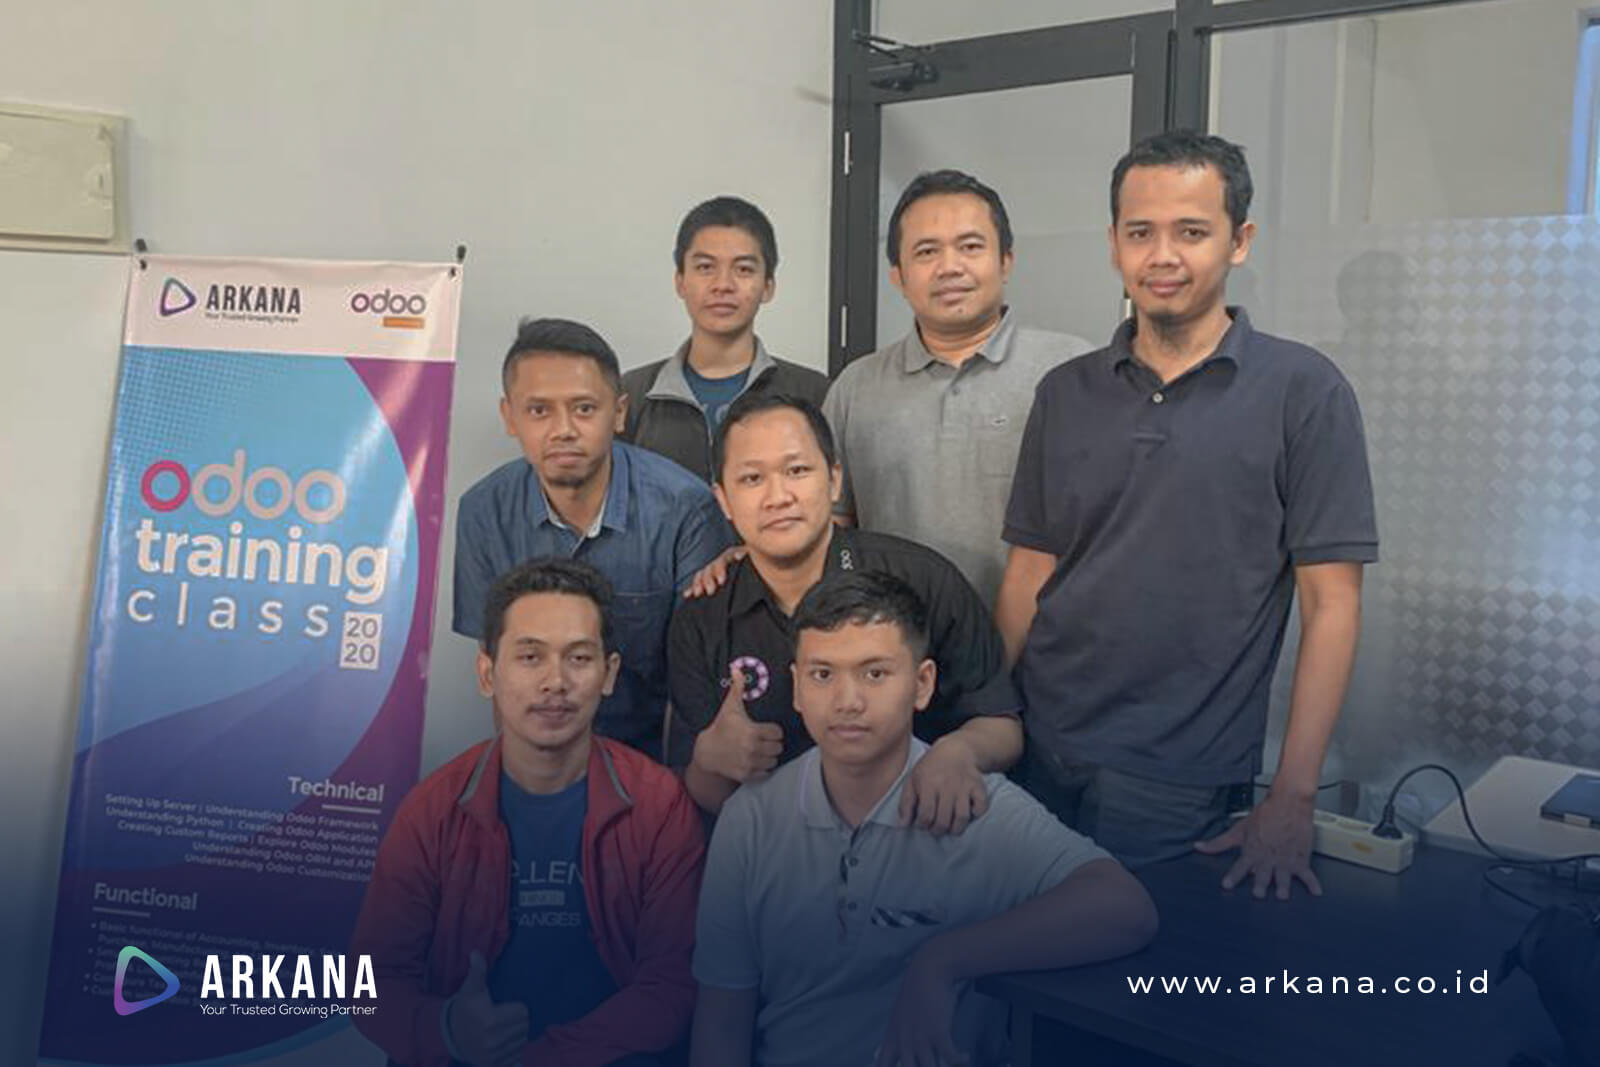 Odoo Training - Arkana